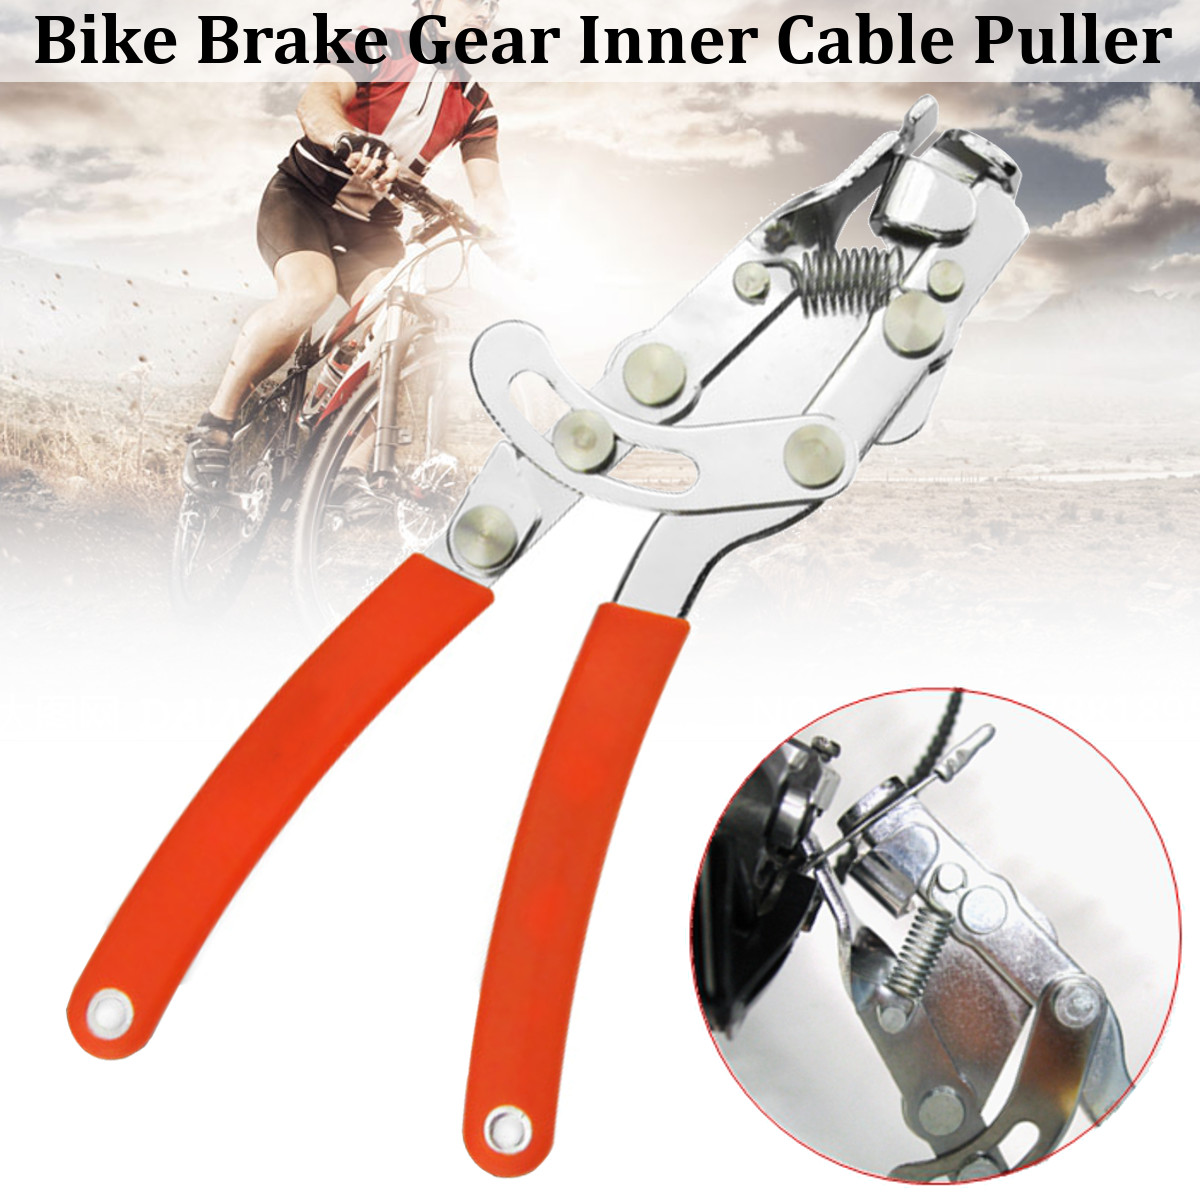 Bike Bicycle Brake Gear Inner Cable Puller Brake Cable Stretcher Hand Pliers Tool